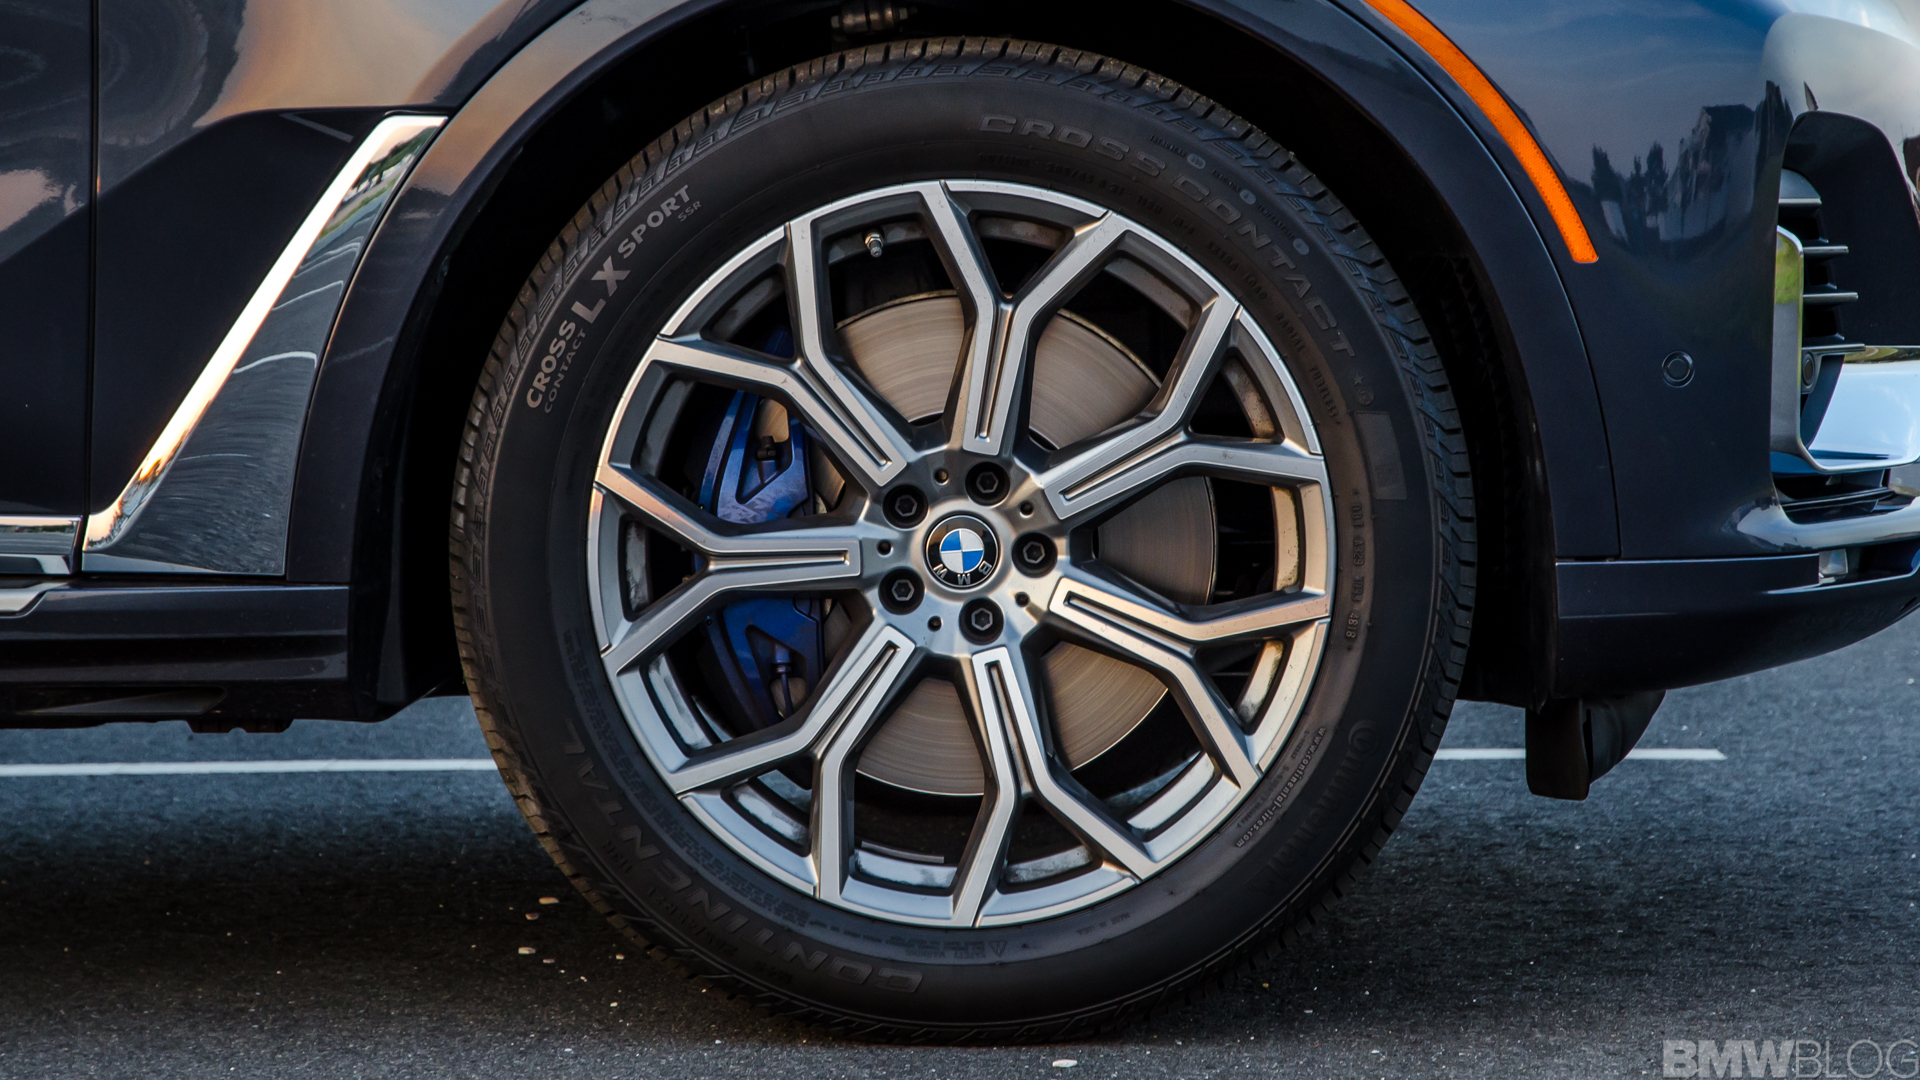 Bmw X5 And X7 Models Will Come With Bridgestone Tires From Now On